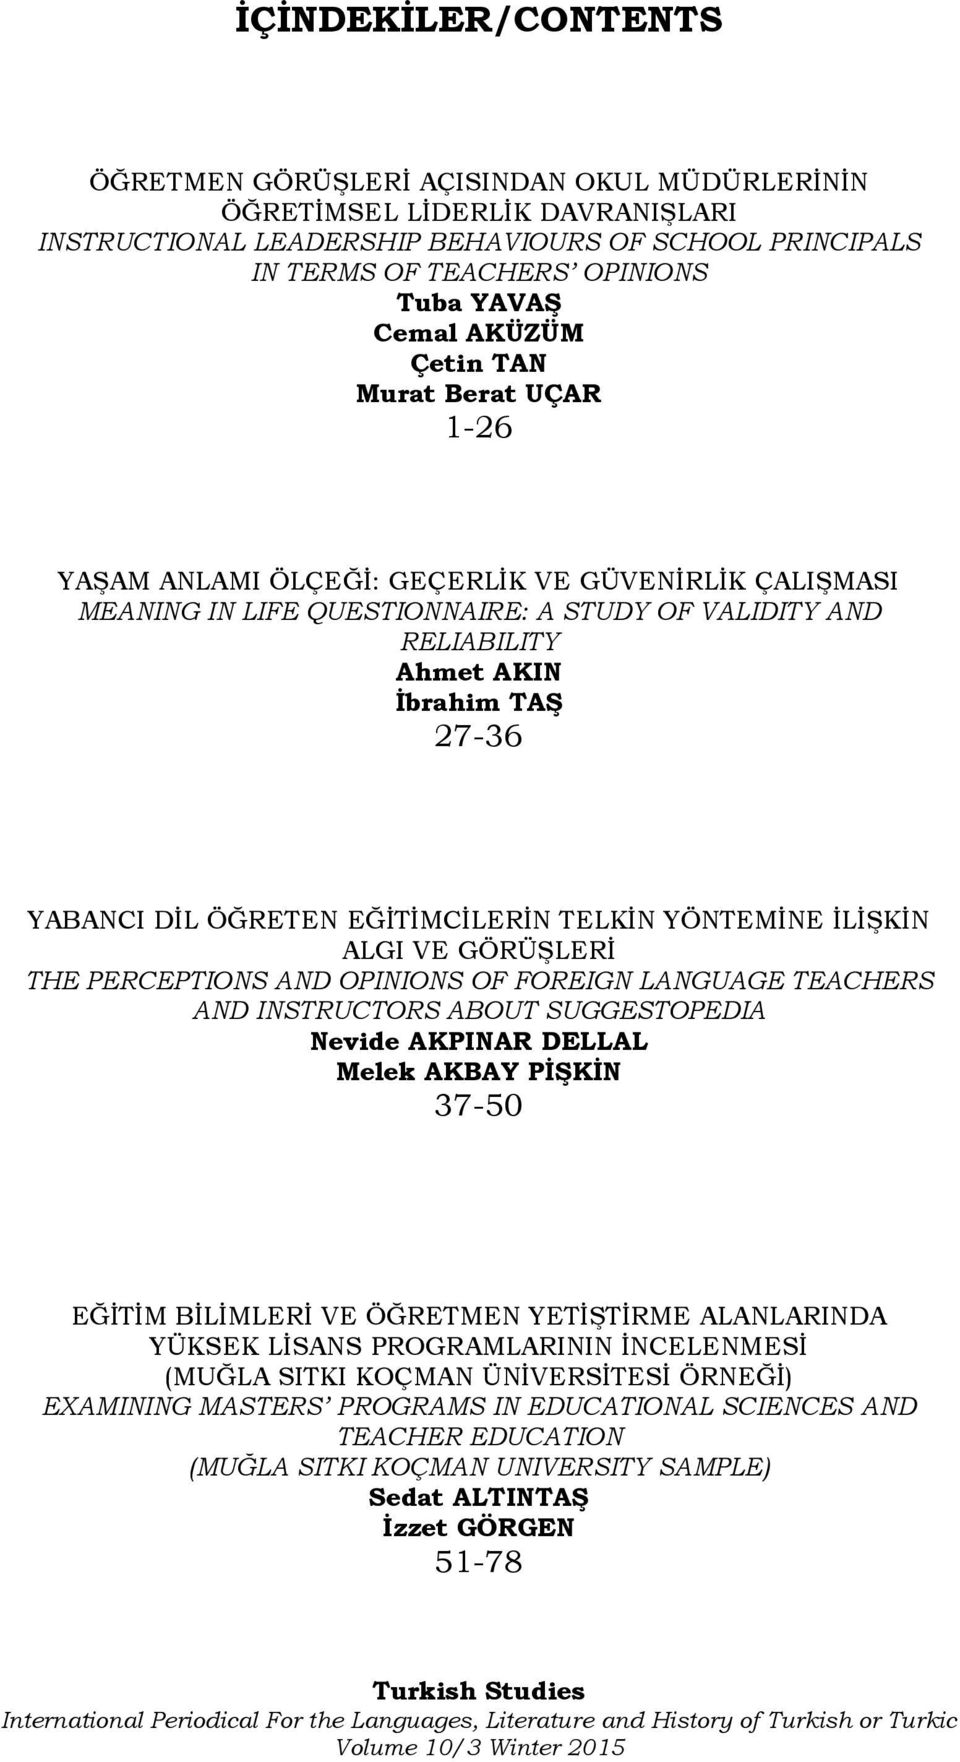 YABANCI DİL ÖĞRETEN EĞİTİMCİLERİN TELKİN YÖNTEMİNE İLİŞKİN ALGI VE GÖRÜŞLERİ THE PERCEPTIONS AND OPINIONS OF FOREIGN LANGUAGE TEACHERS AND INSTRUCTORS ABOUT SUGGESTOPEDIA Nevide AKPINAR DELLAL Melek